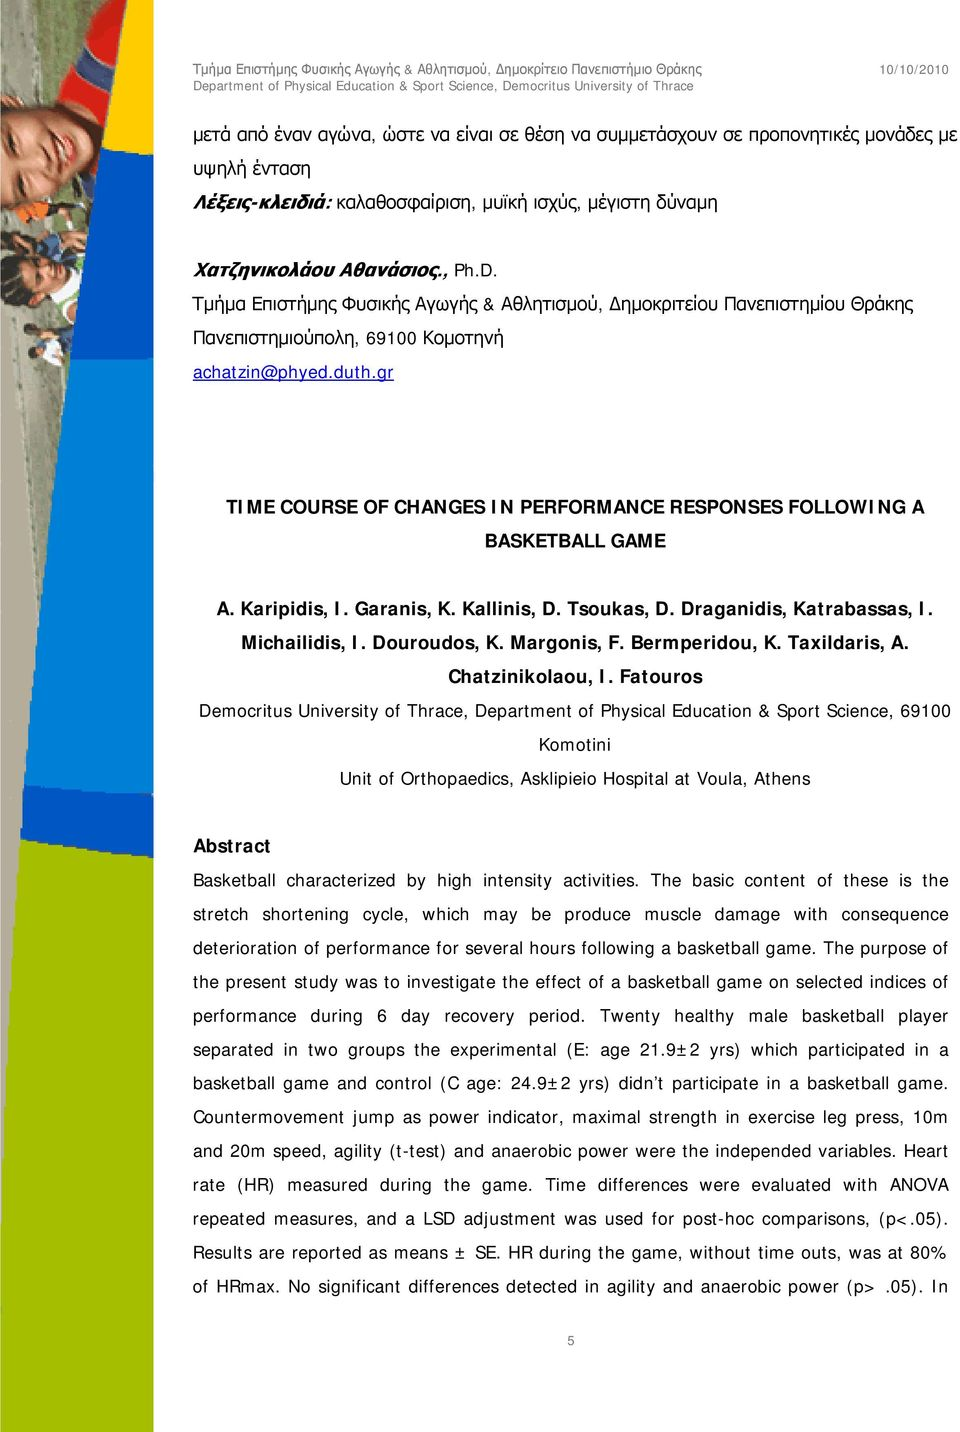 gr TIME COURSE OF CHANGES IN PERFORMANCE RESPONSES FOLLOWING A BASKETBALL GAME A. Karipidis, I. Garanis, K. Kallinis, D. Tsoukas, D. Draganidis, Katrabassas, I. Michailidis, I. Douroudos, K.